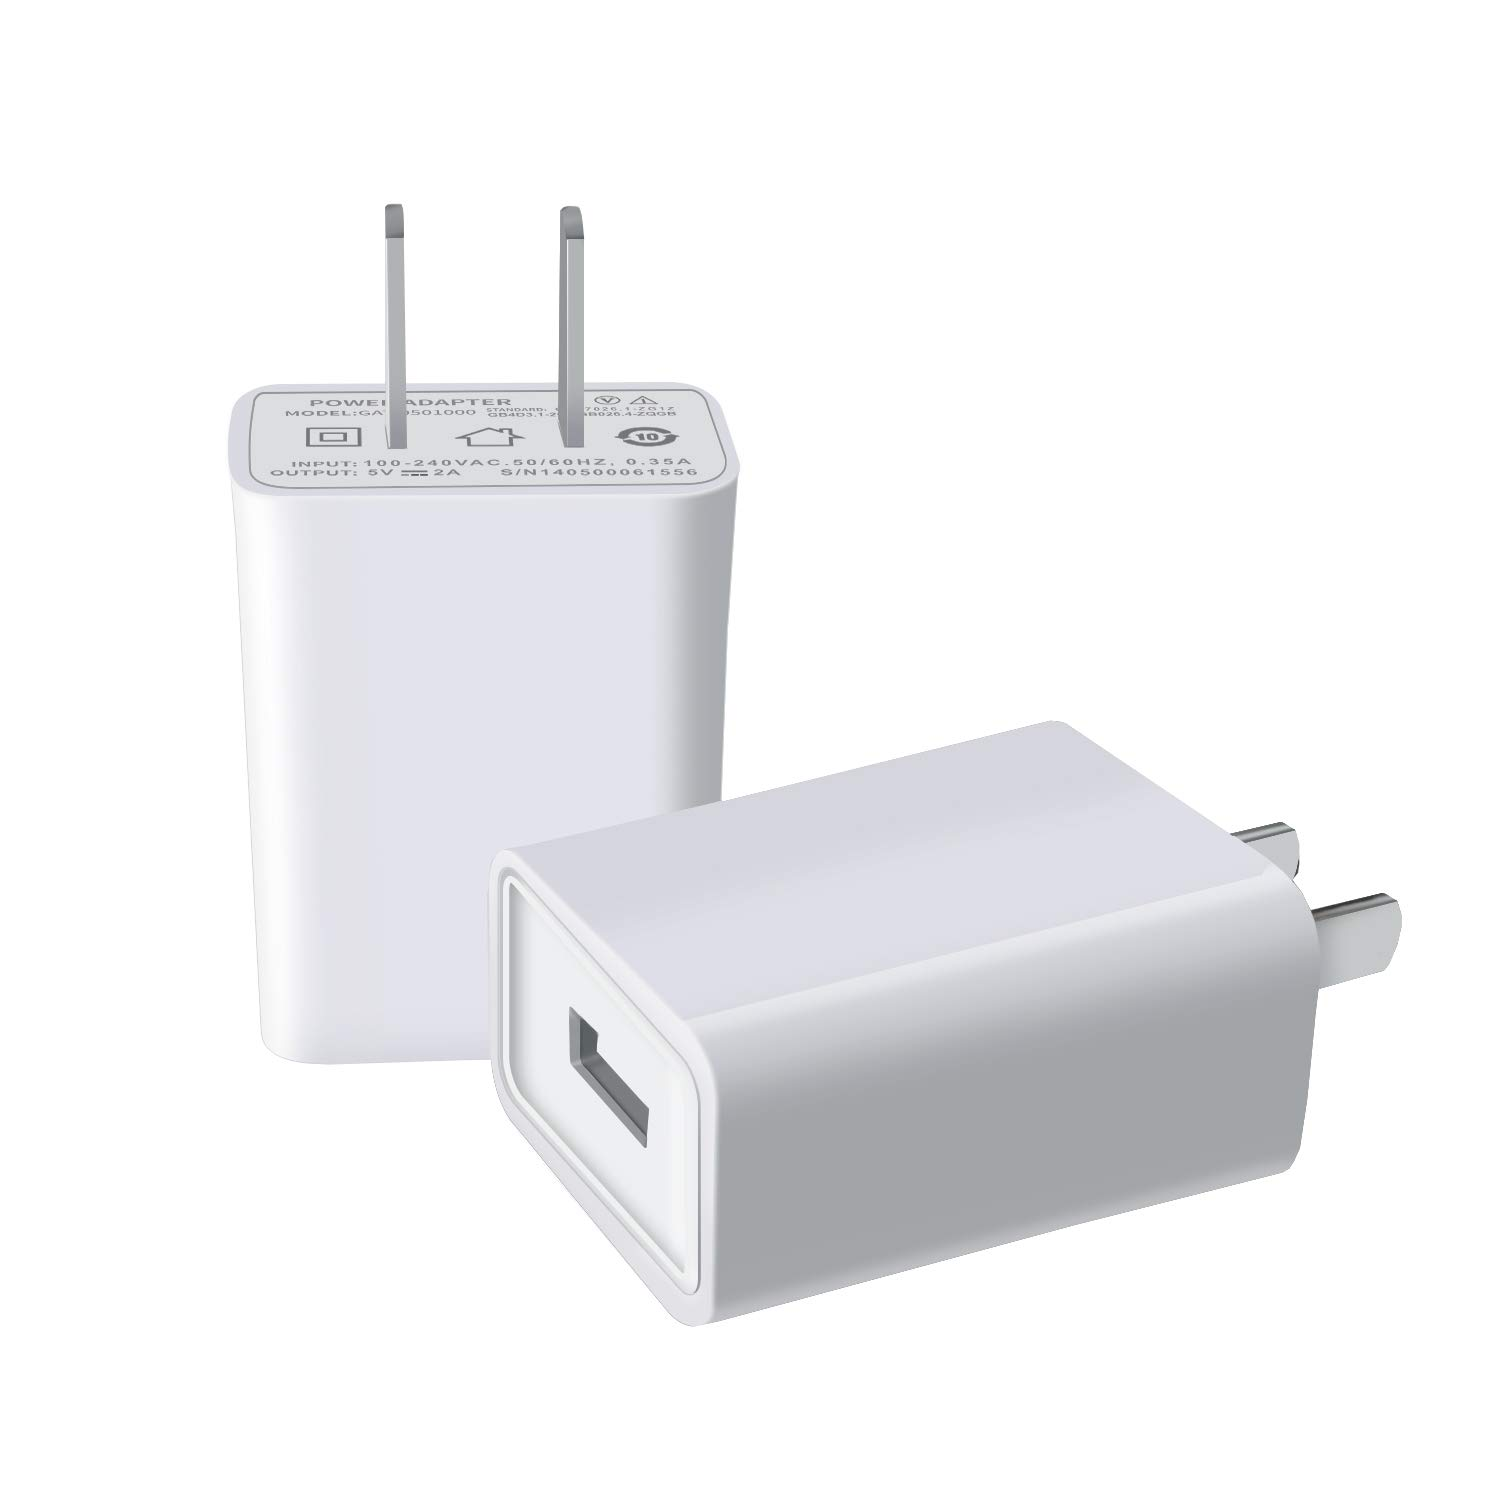 on sale d802f 87b31 USB Wall Charger,FOBSUNLAND USB Wall Plug 5V 2A AC Power Adapter Compatible  with iPhone,iPad,Samsung,Huawei,Tablet,Kindle and More (White 2pack)